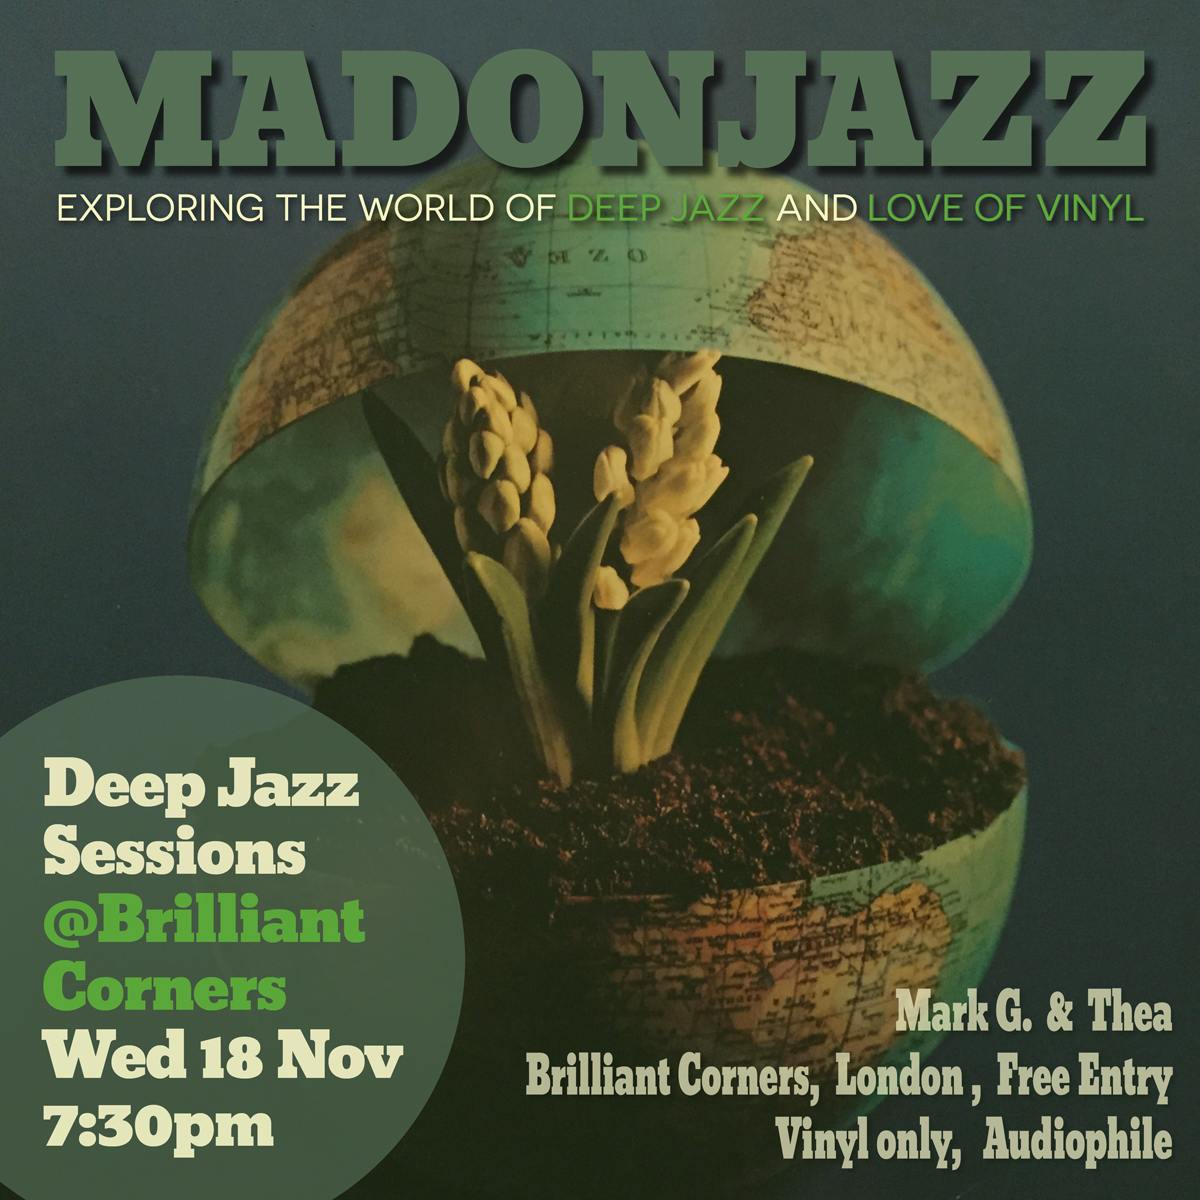 MADONJAZZ : DEEP JAZZ SESSIONS @BRILLIANT CORNERS 18 NOV